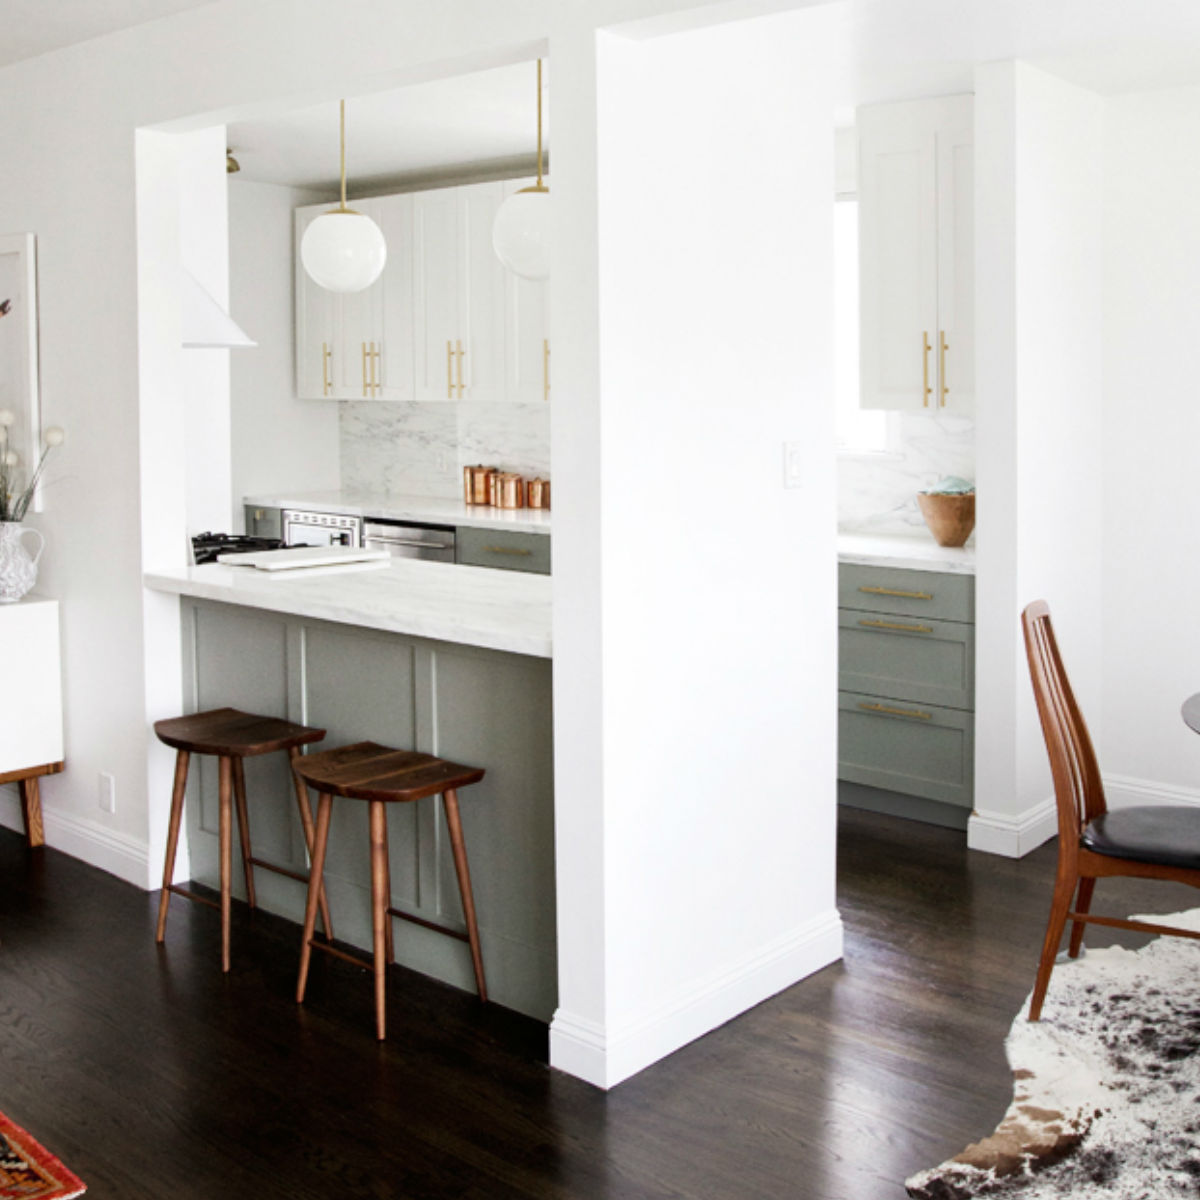 Kitchen Renovation Youtube: The Balancing Act Of A Homeshare Host